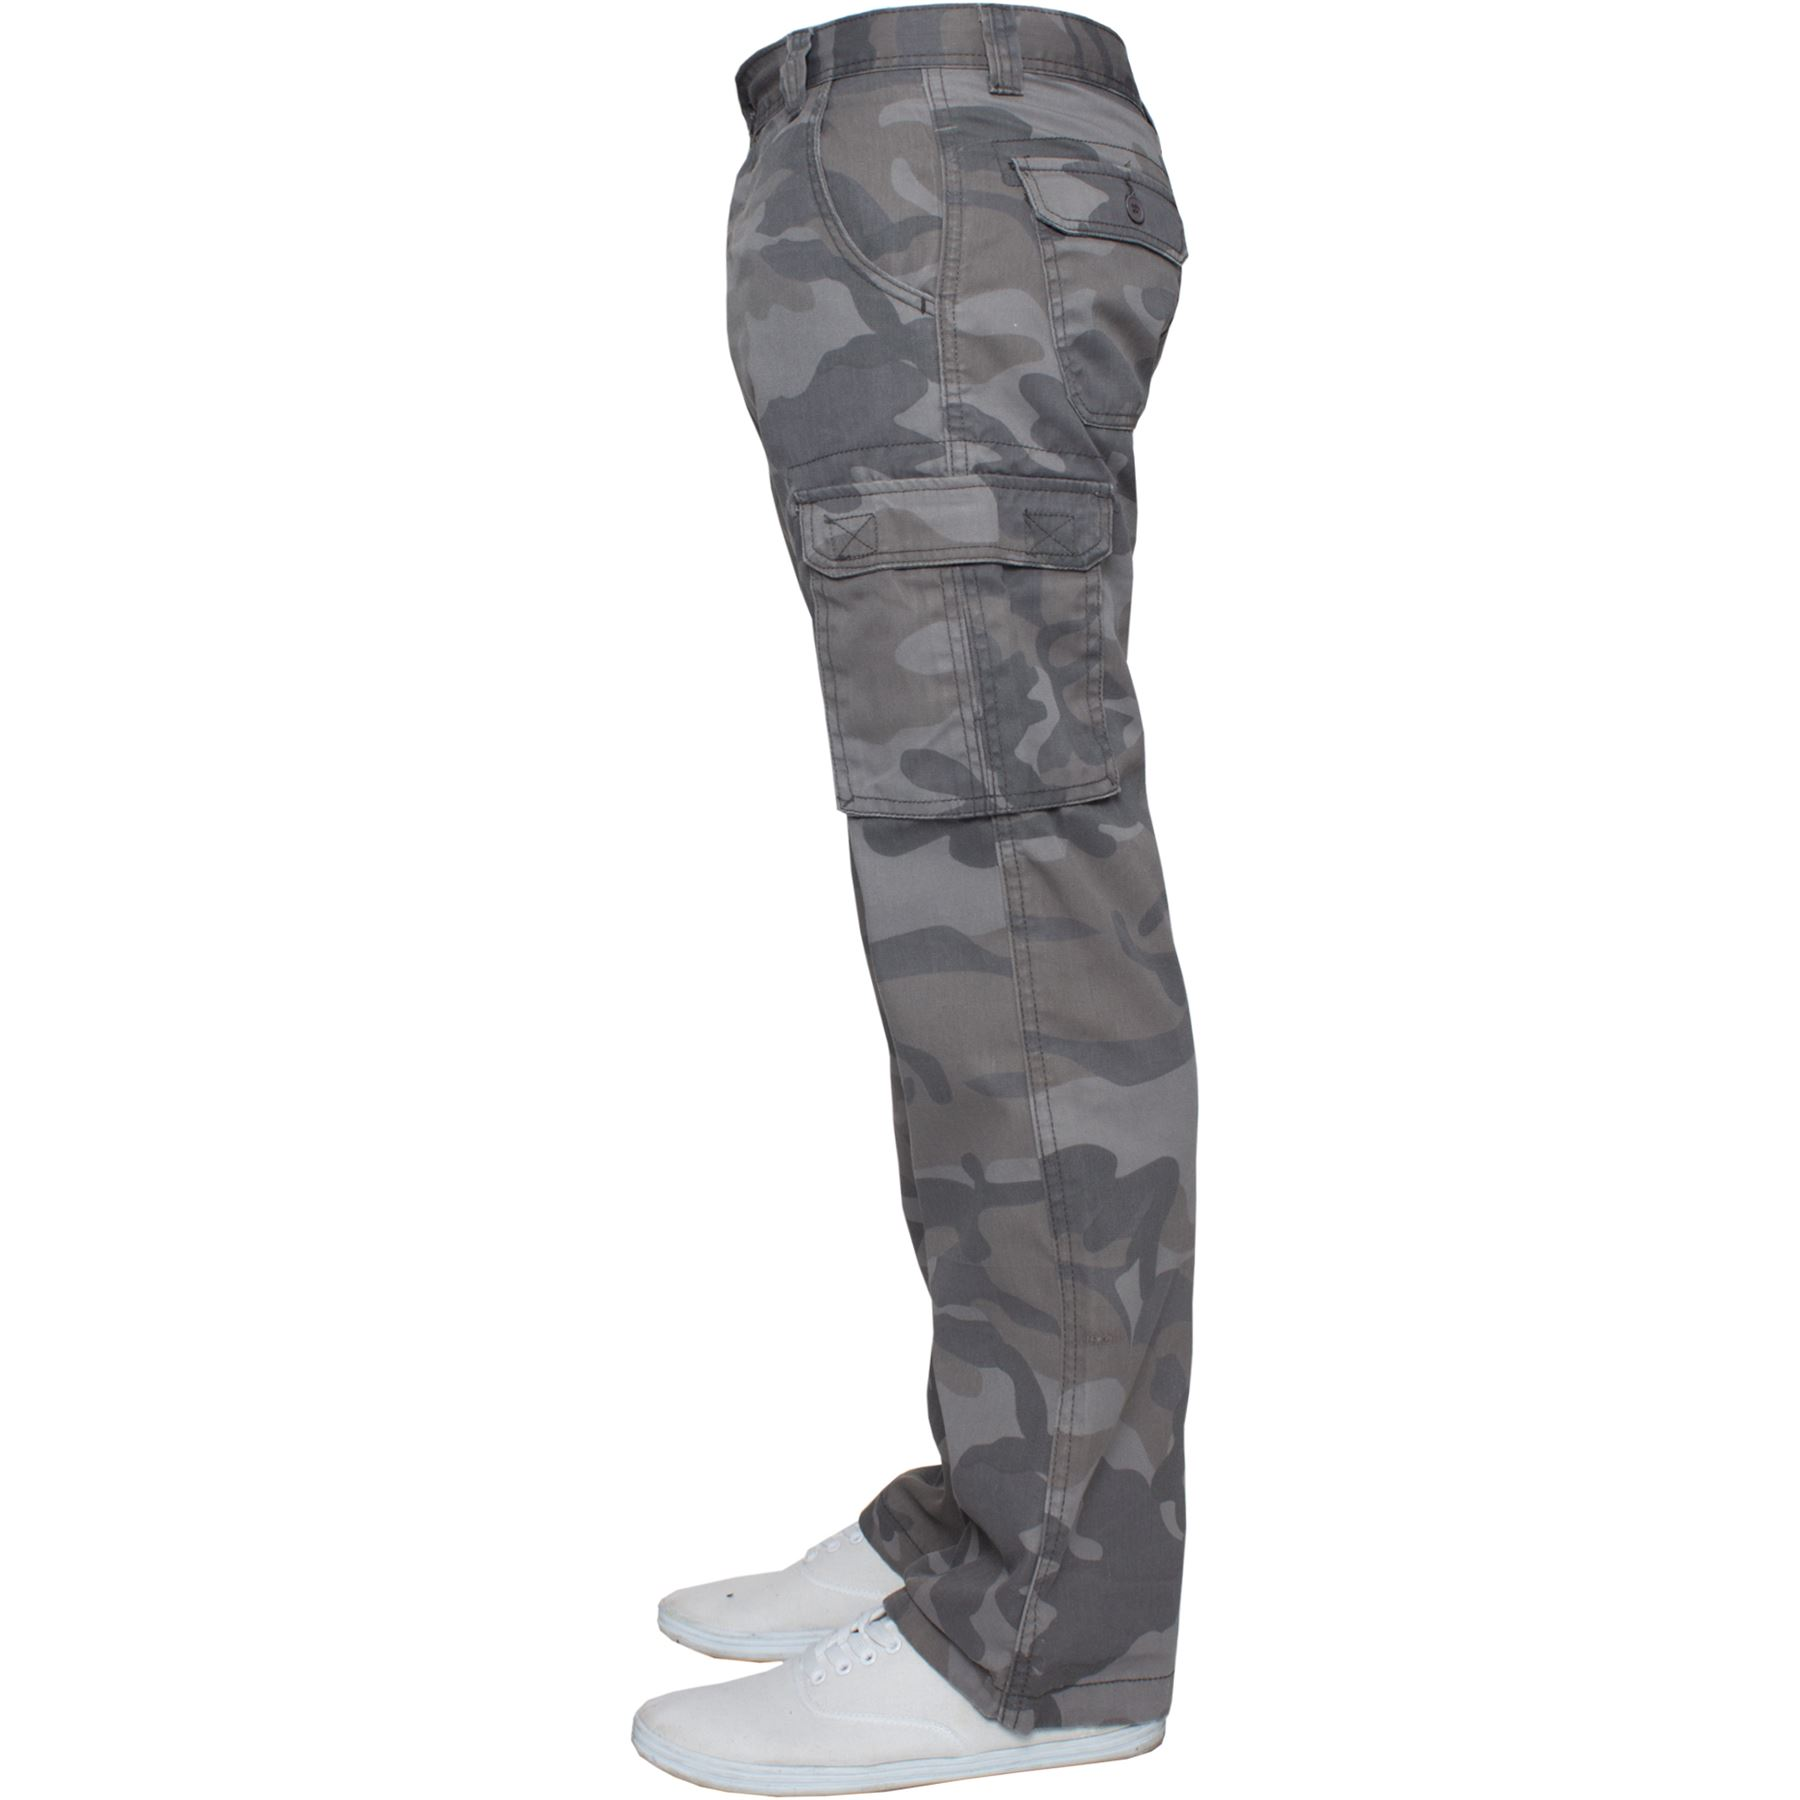 Kruze-Mens-Military-Combat-Trousers-Camouflage-Cargo-Camo-Army-Casual-Work-Pants miniatura 11